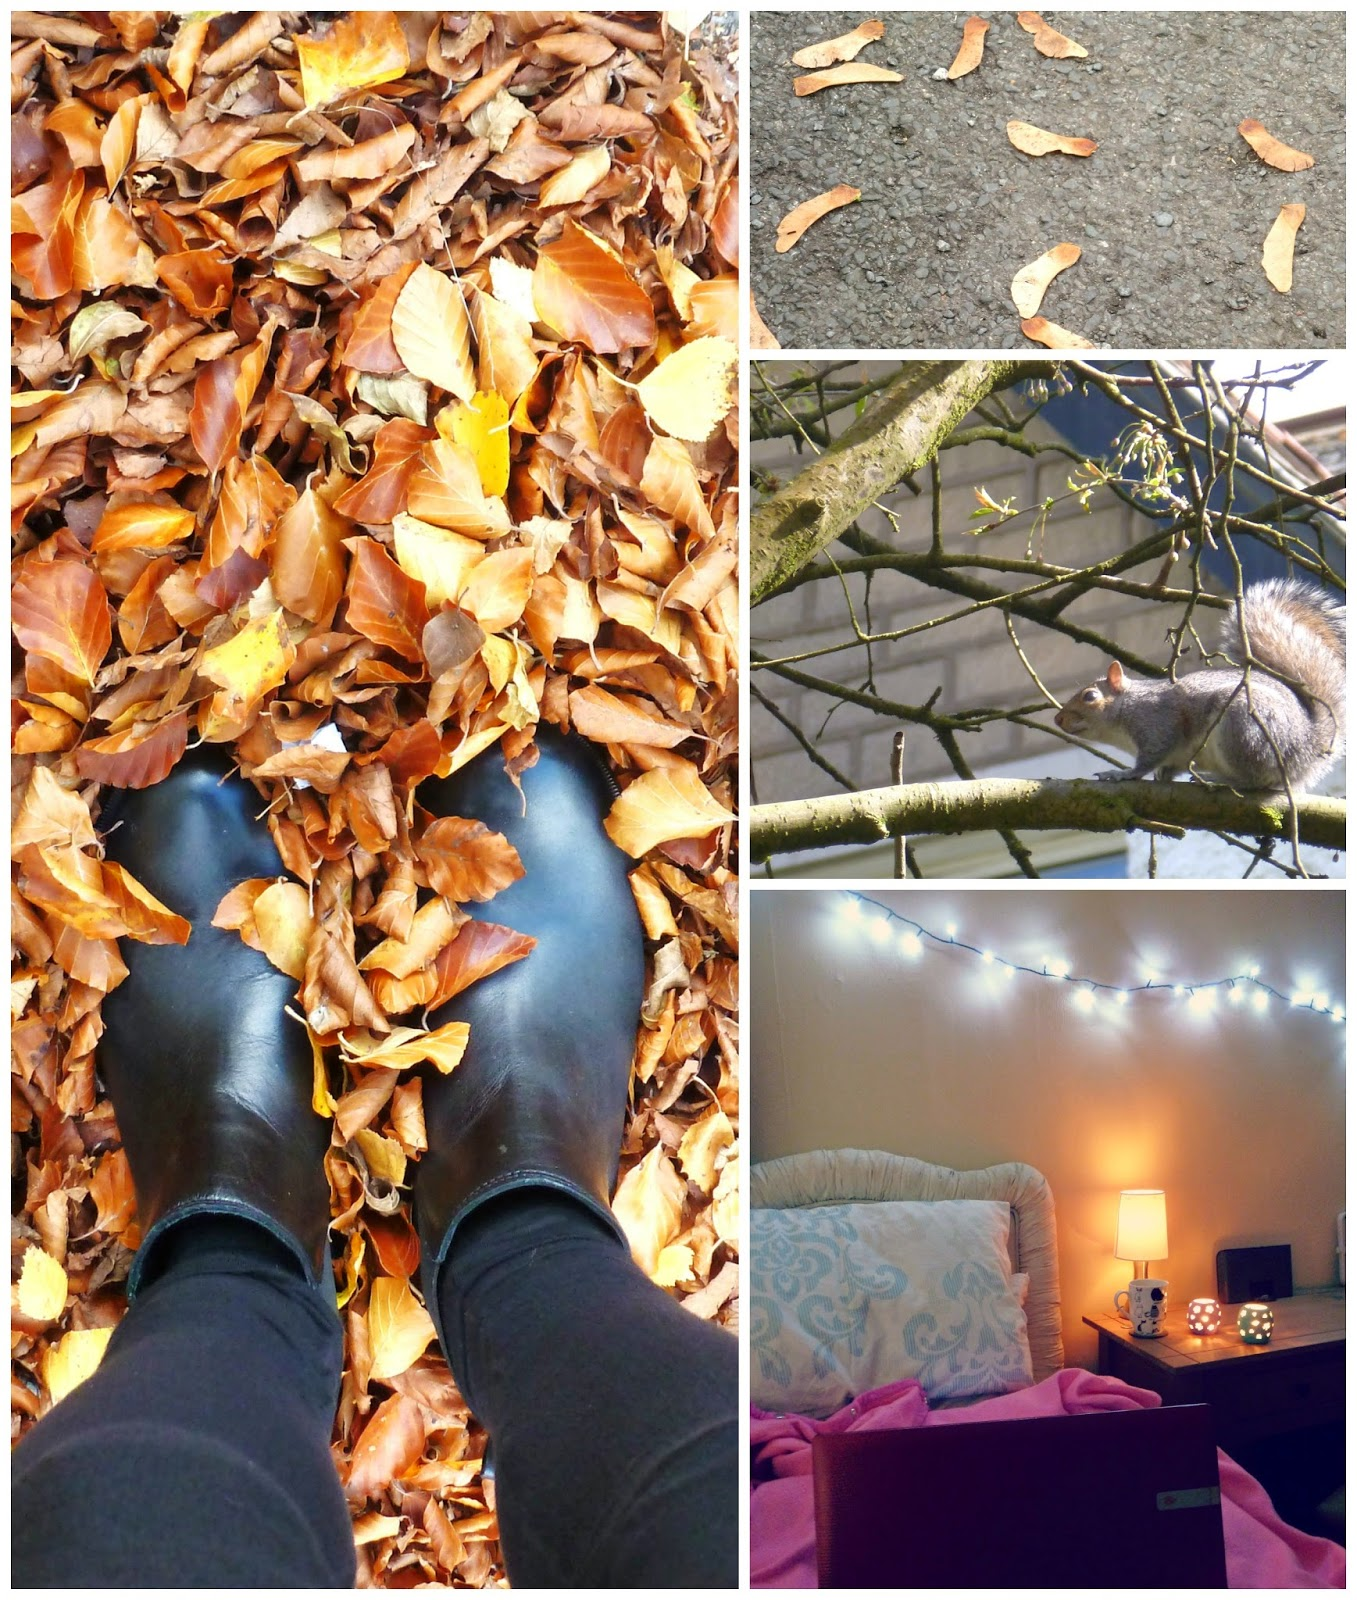 Autumn leaves, chelsea boots, tumblr, spinning jenny's , squirrel, bedroom lights fairy laptop candles